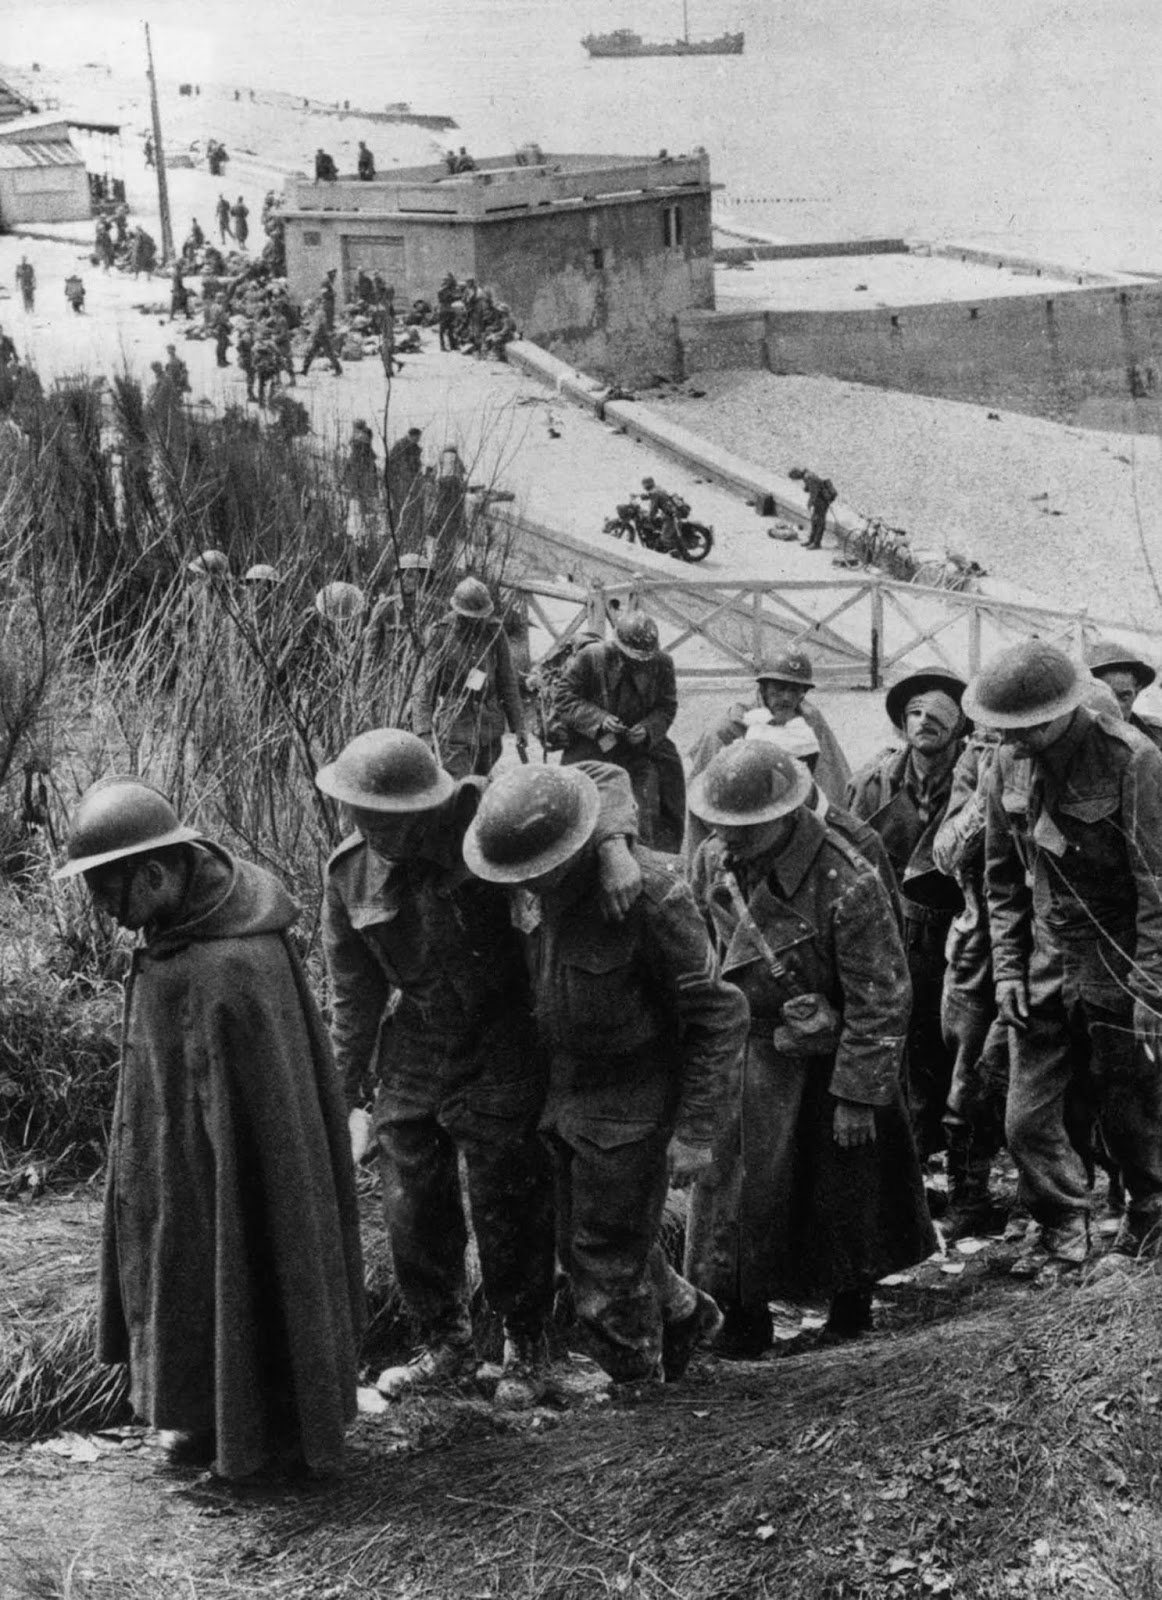 French troops are taken prisoner by the Germans at Dunkirk.